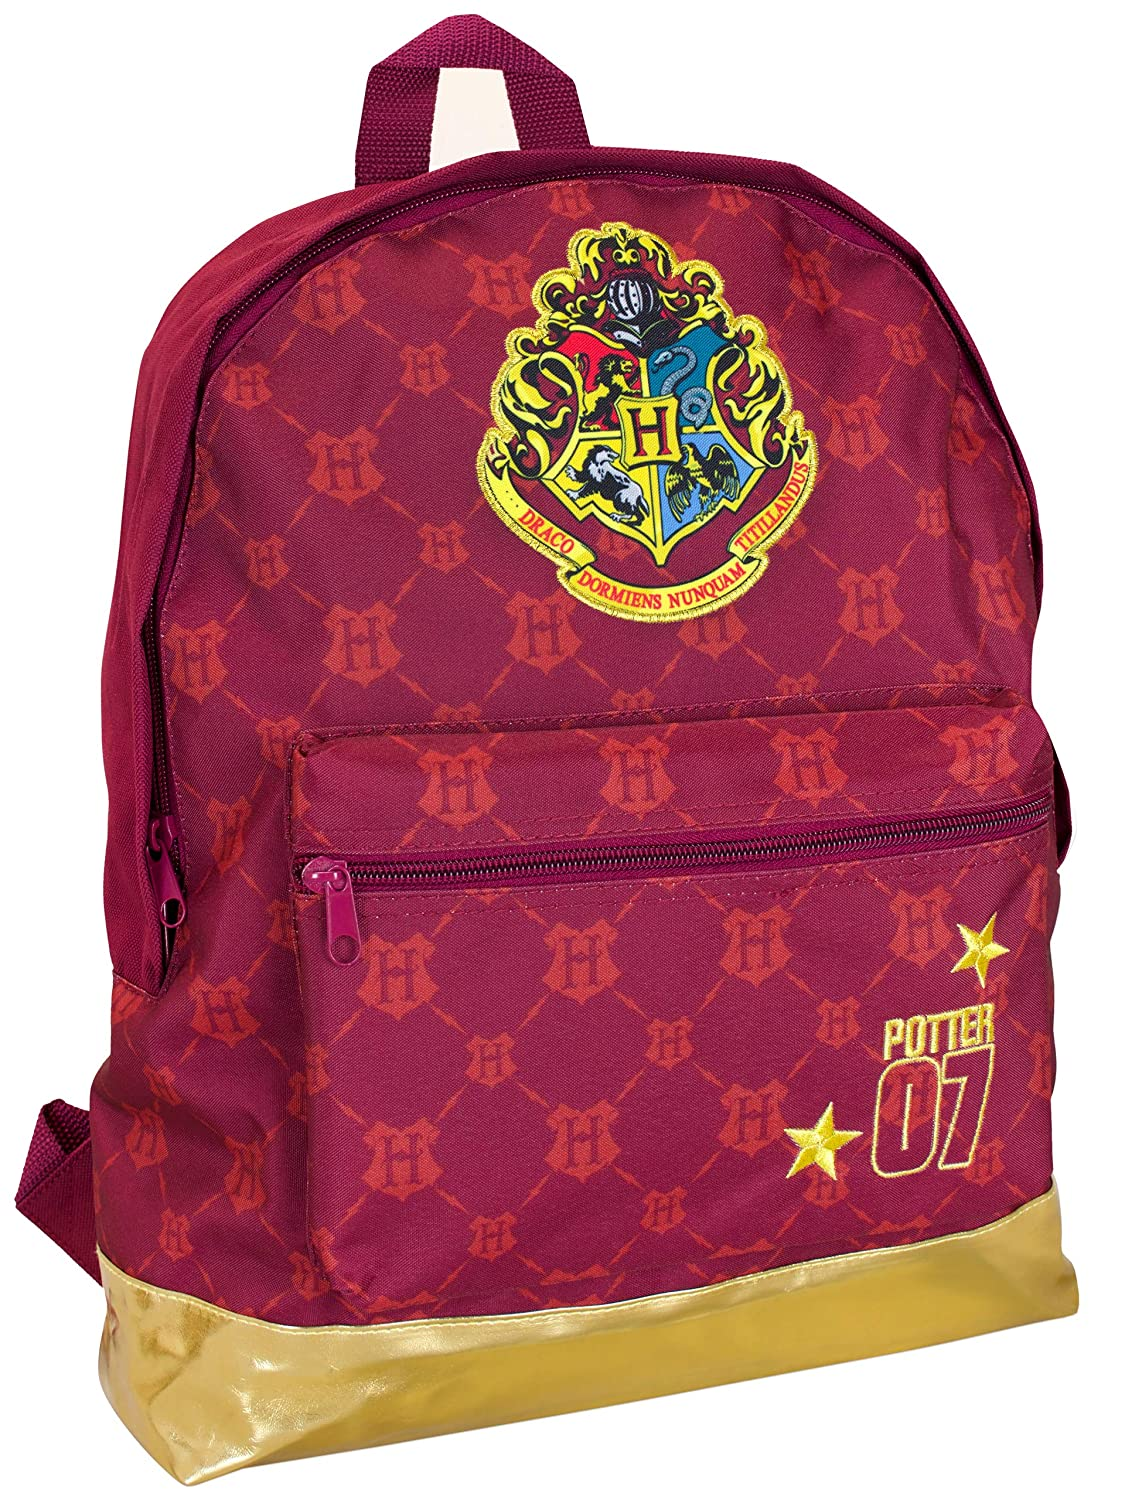 Harry Potter Enfants Hogwarts Sac à  Dos, Multicolore, One Size